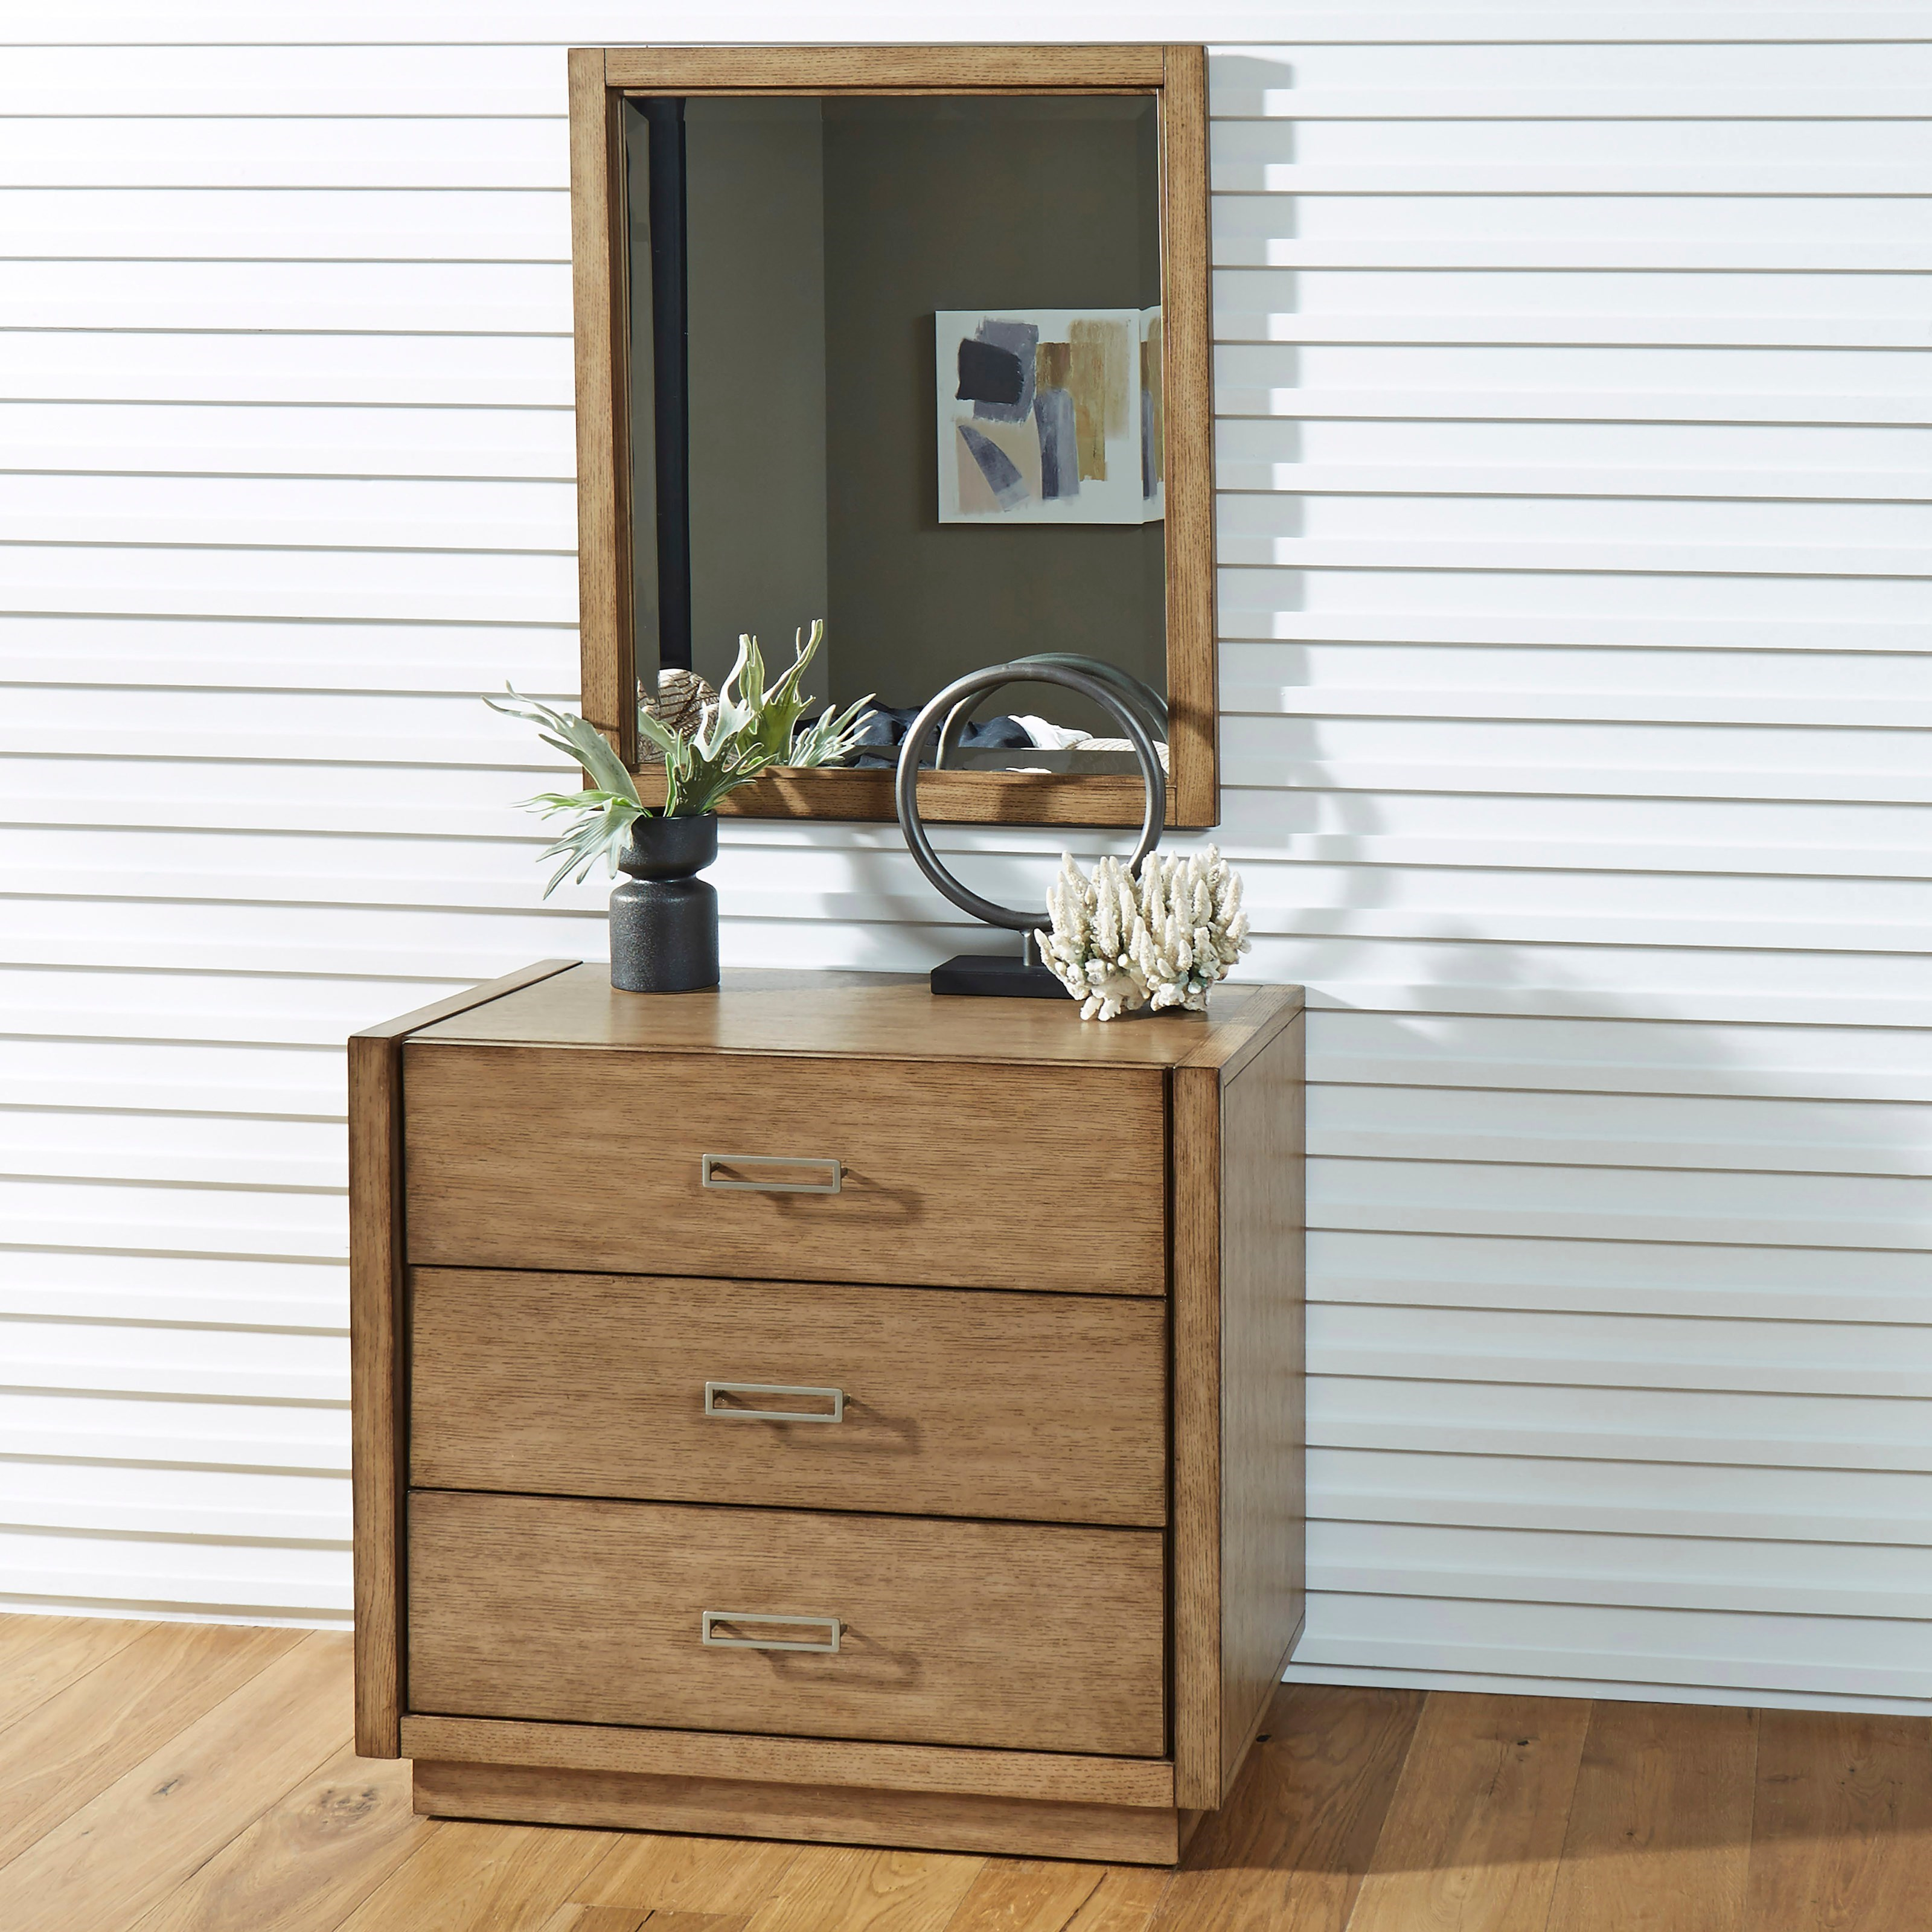 Big Sur Chest and Mirror by Homestyles at Northeast Factory Direct